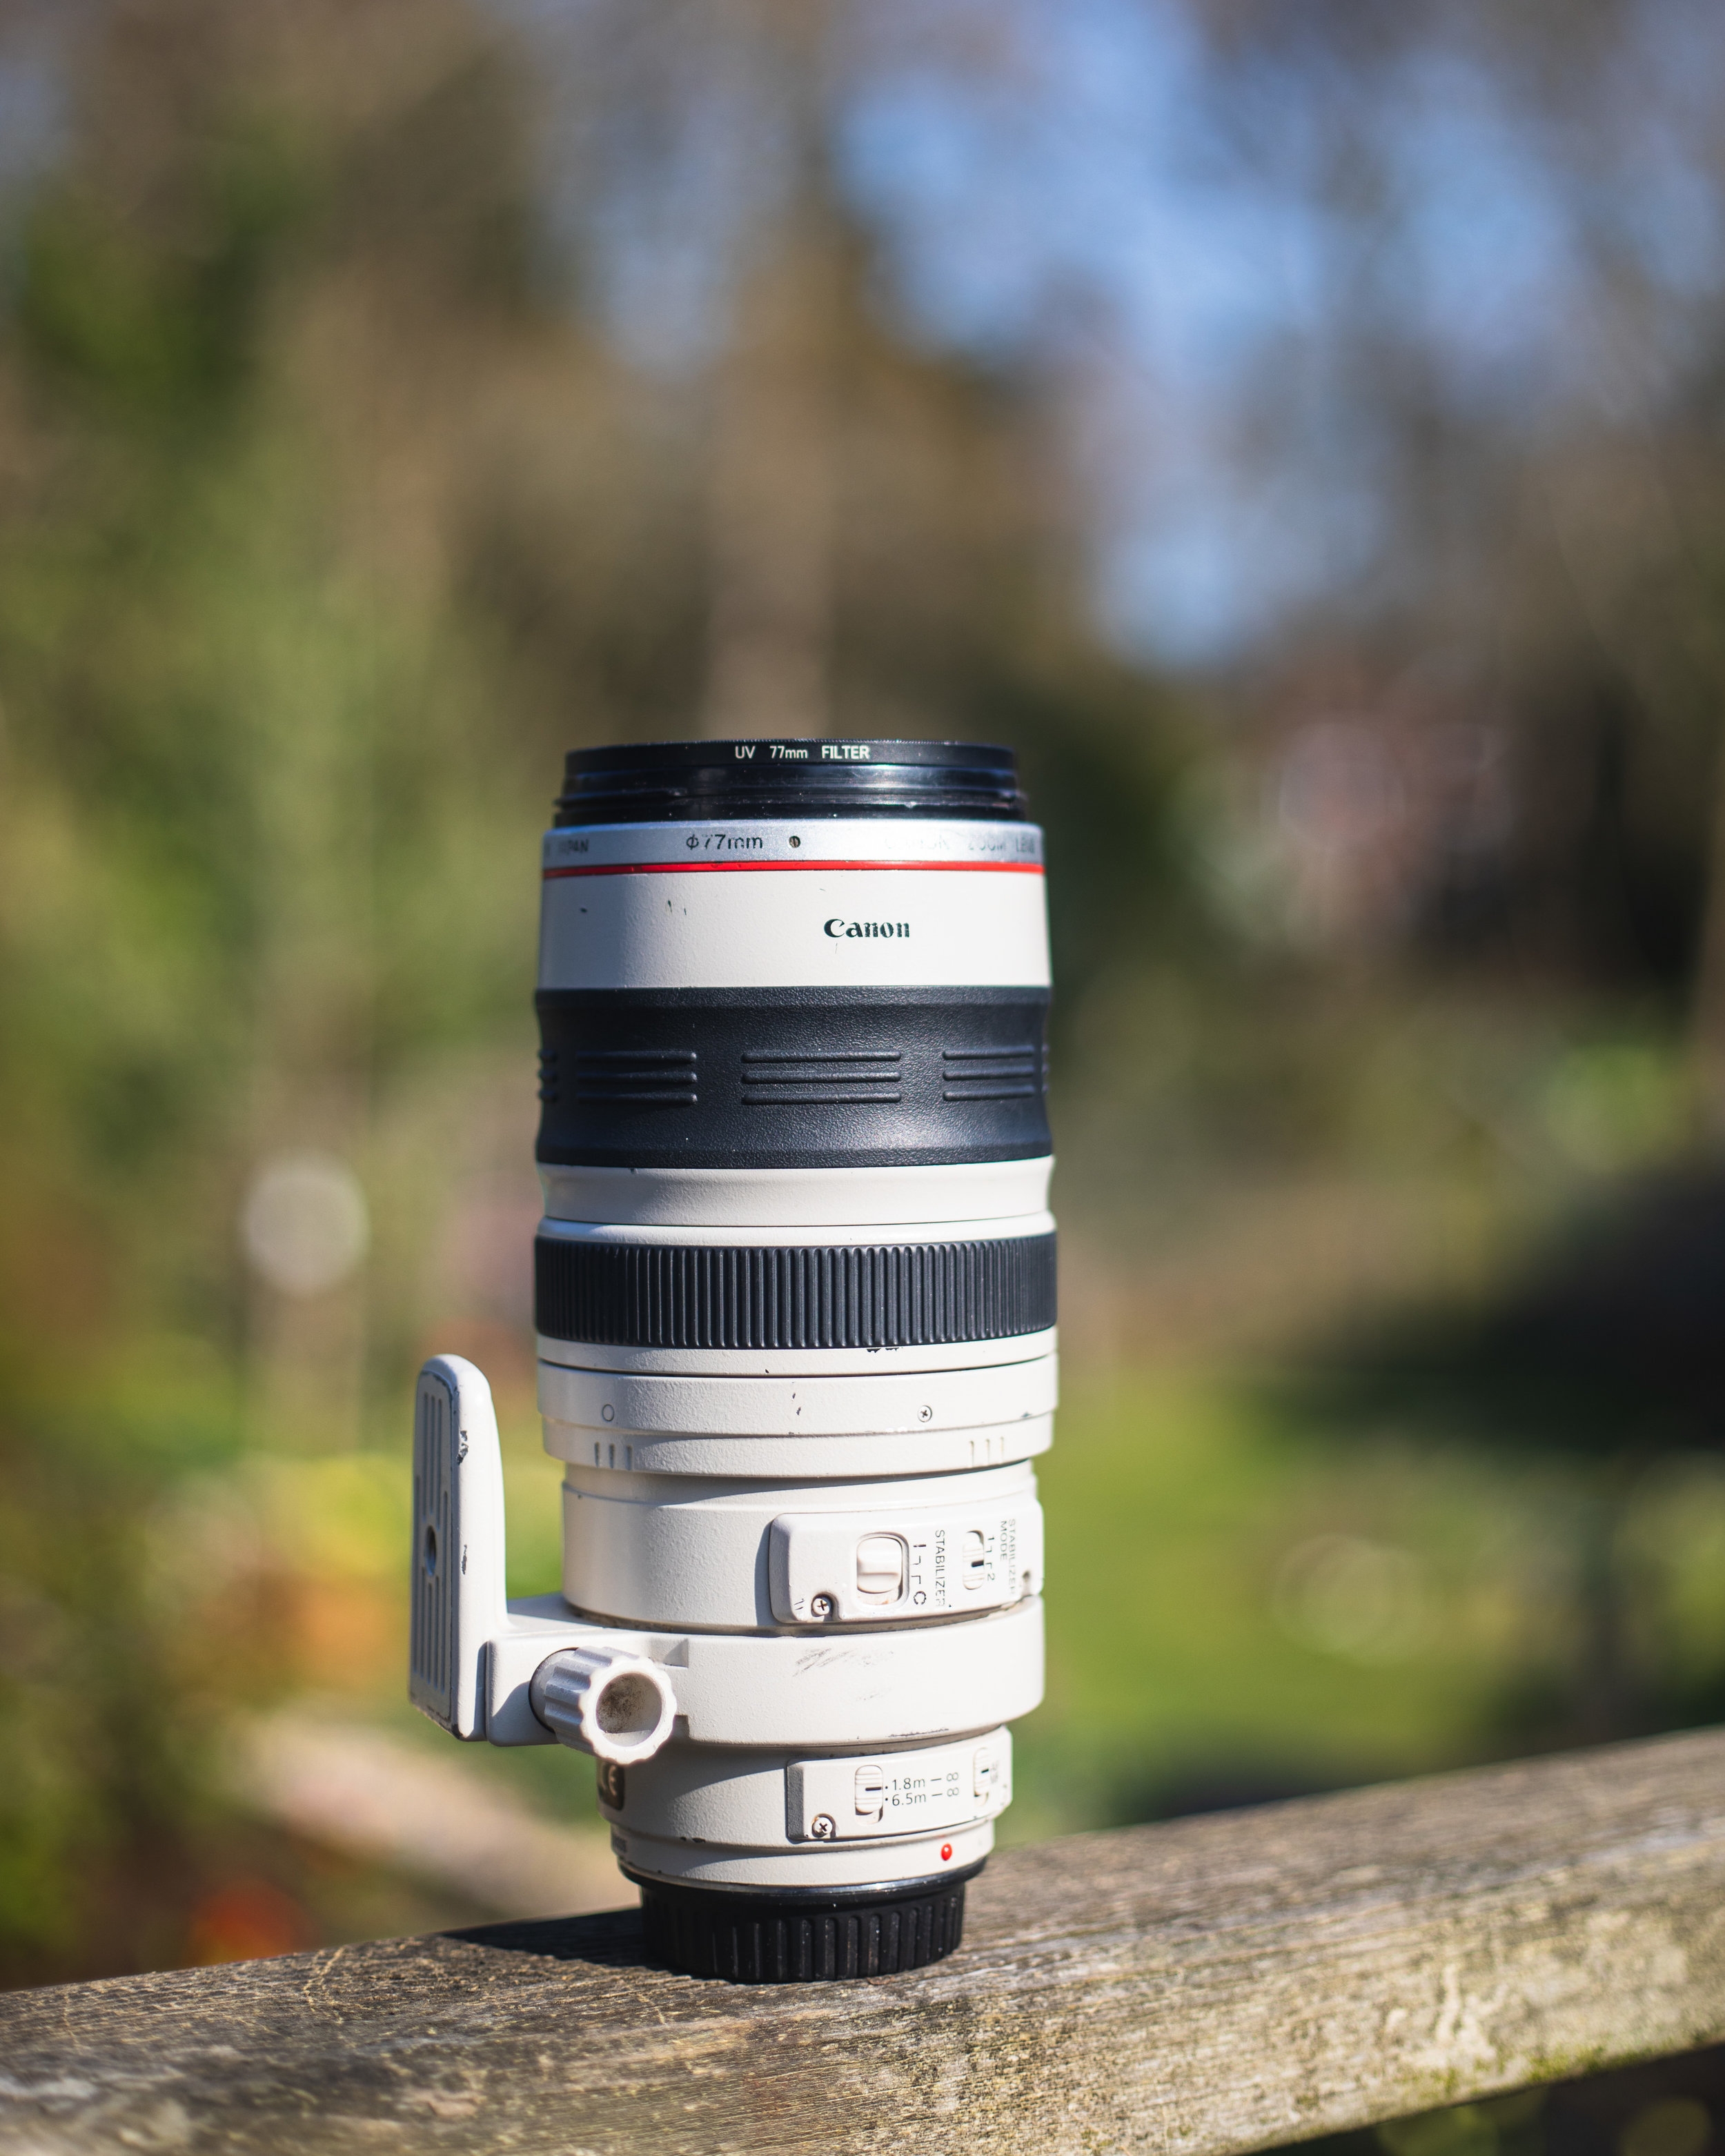 Telephoto Lens - Canon 100-400mm